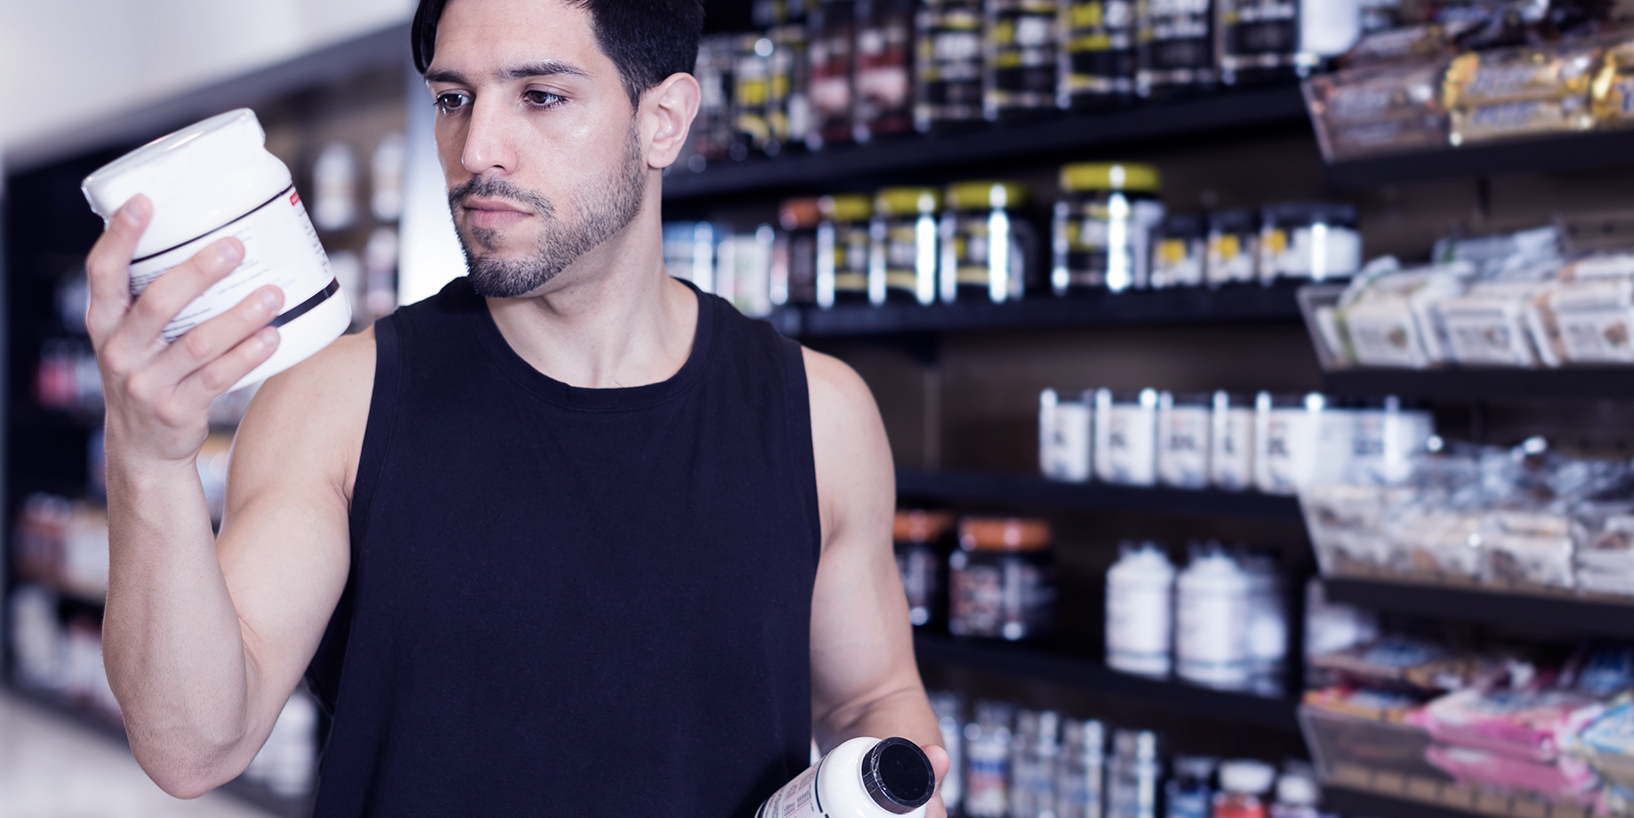 Man comparing supplements